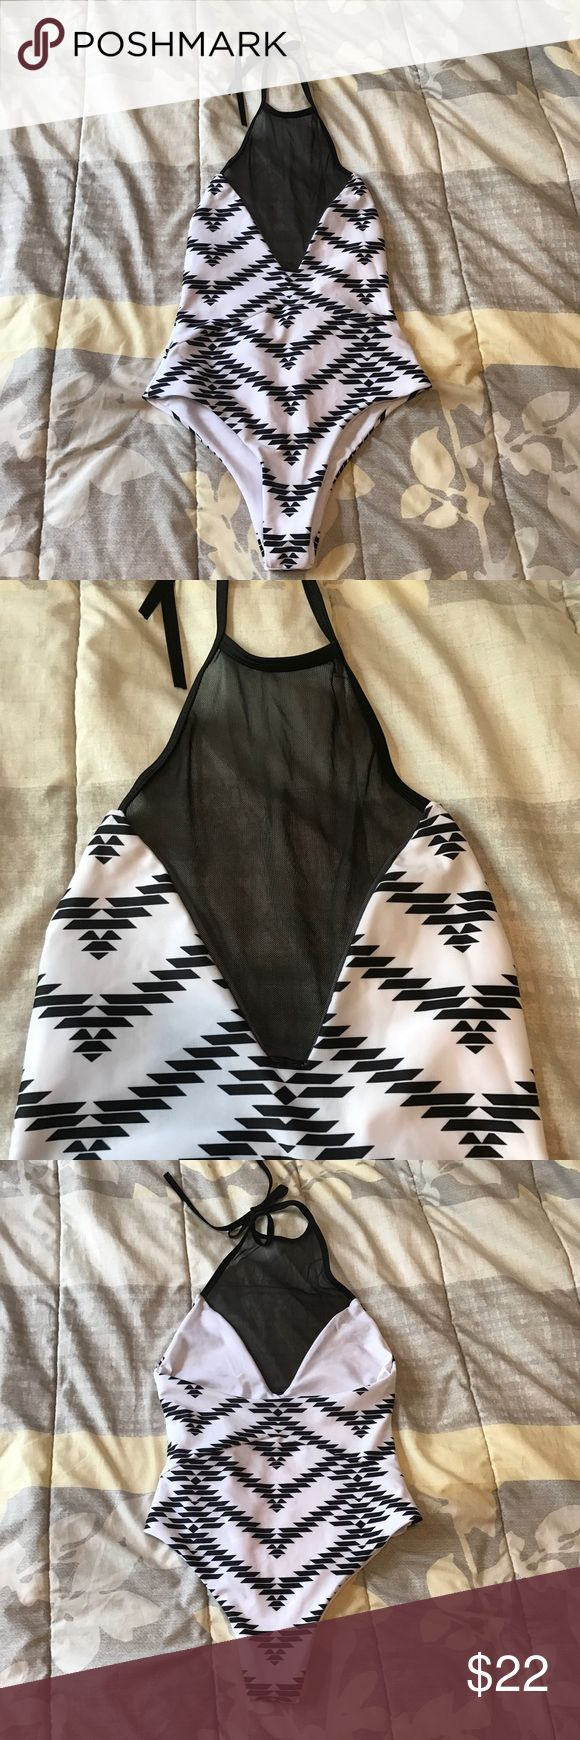 Sexy black and white one piece swimsuit NWOT, still has original hygiene liner. Tag says size L but fits more like a M Swim One Pieces